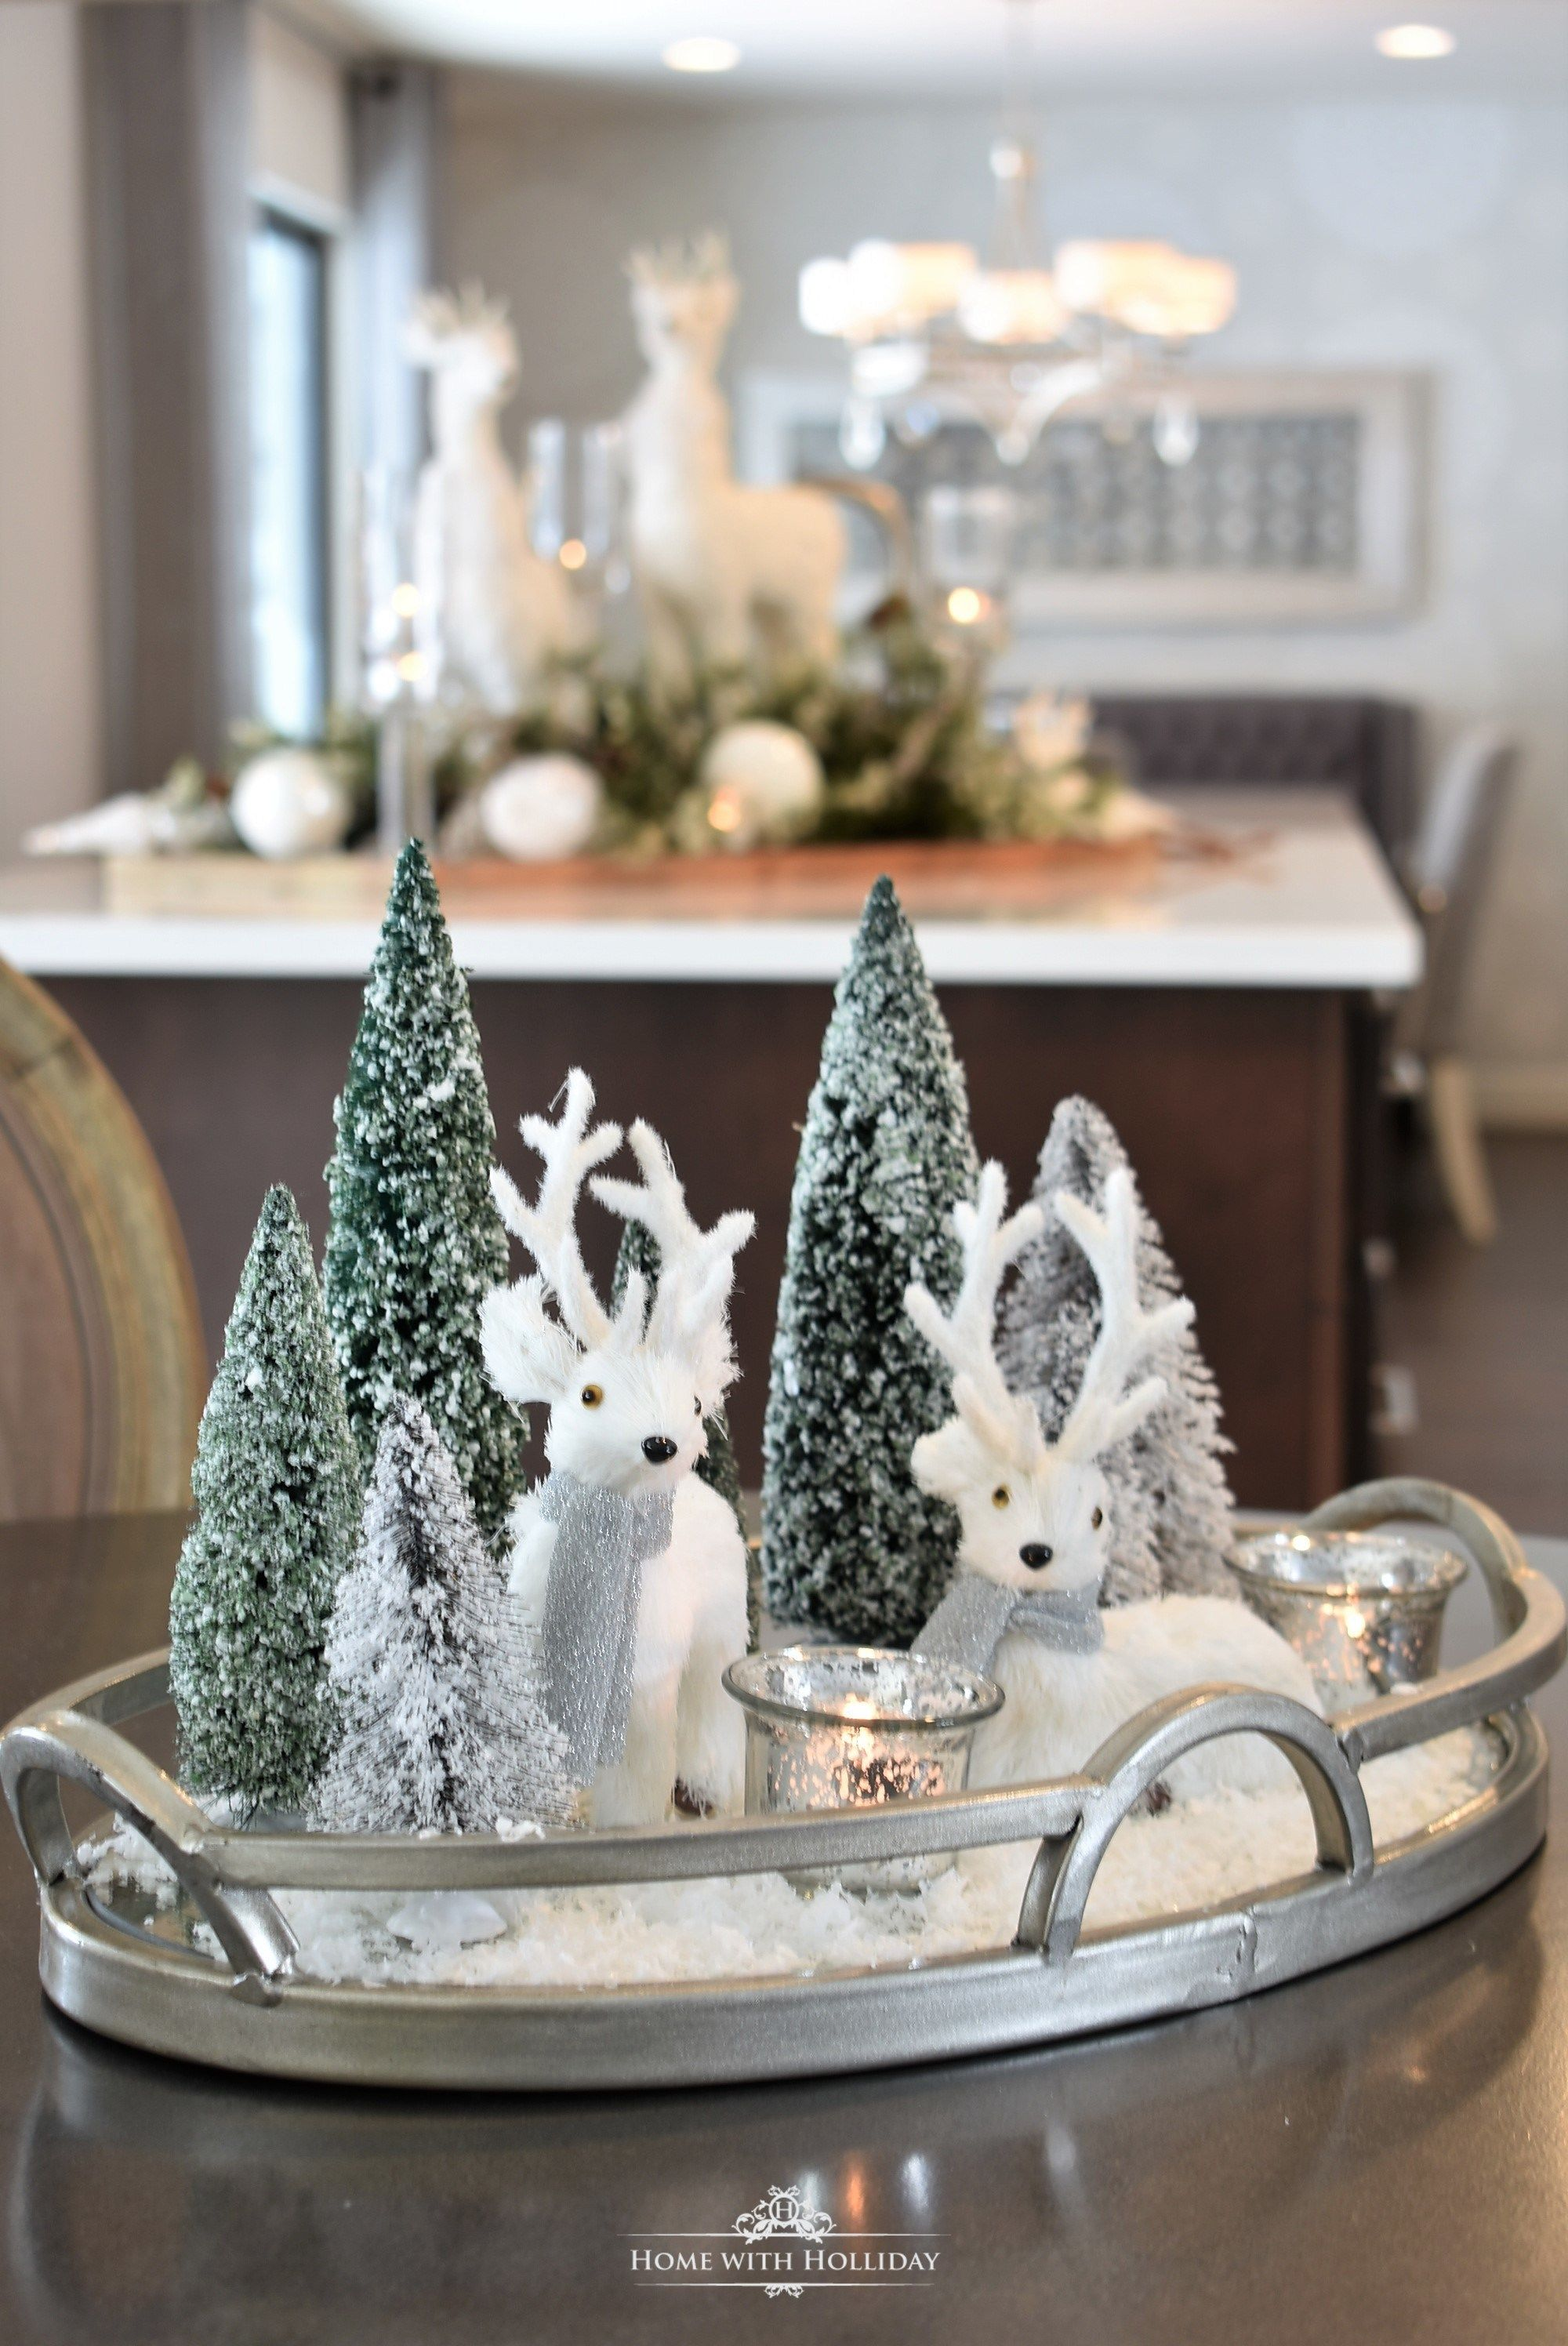 Winter White Christmas Centerpiece - Home with Holliday #weihnachtlicheszuhause